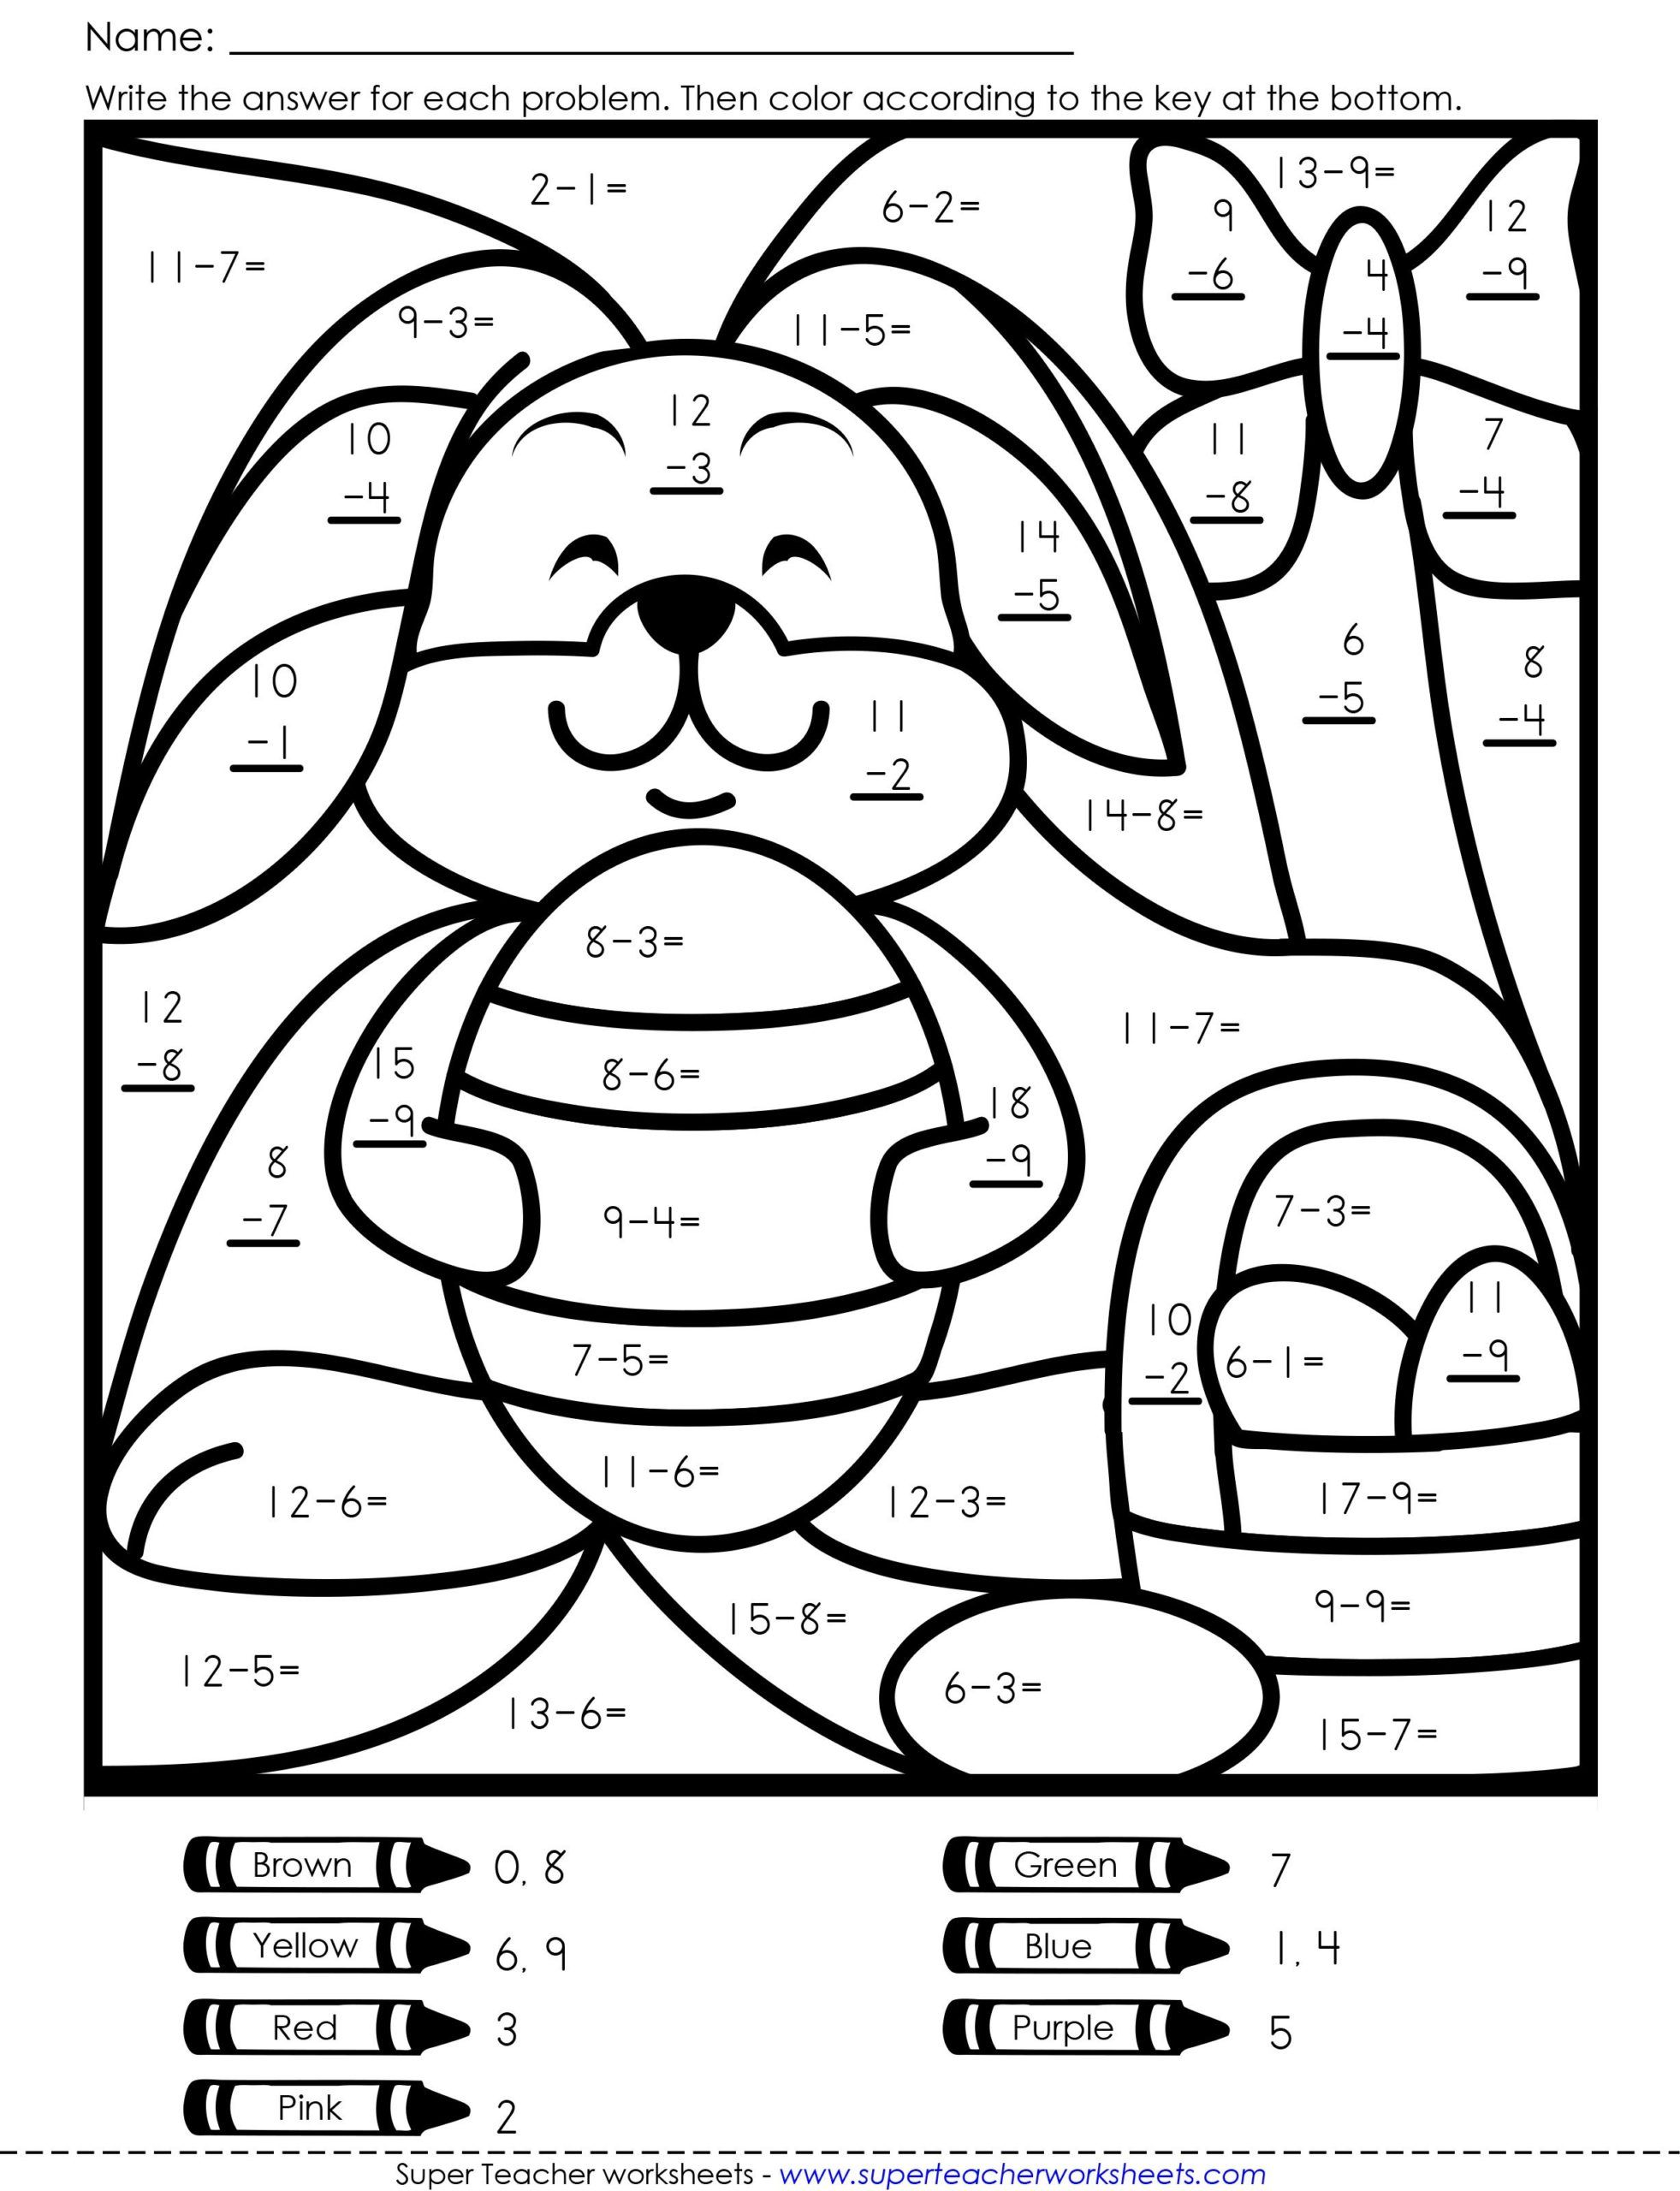 medium resolution of Coloring Addition Worksheets For Grade 1 - colouring mermaid   Easter math